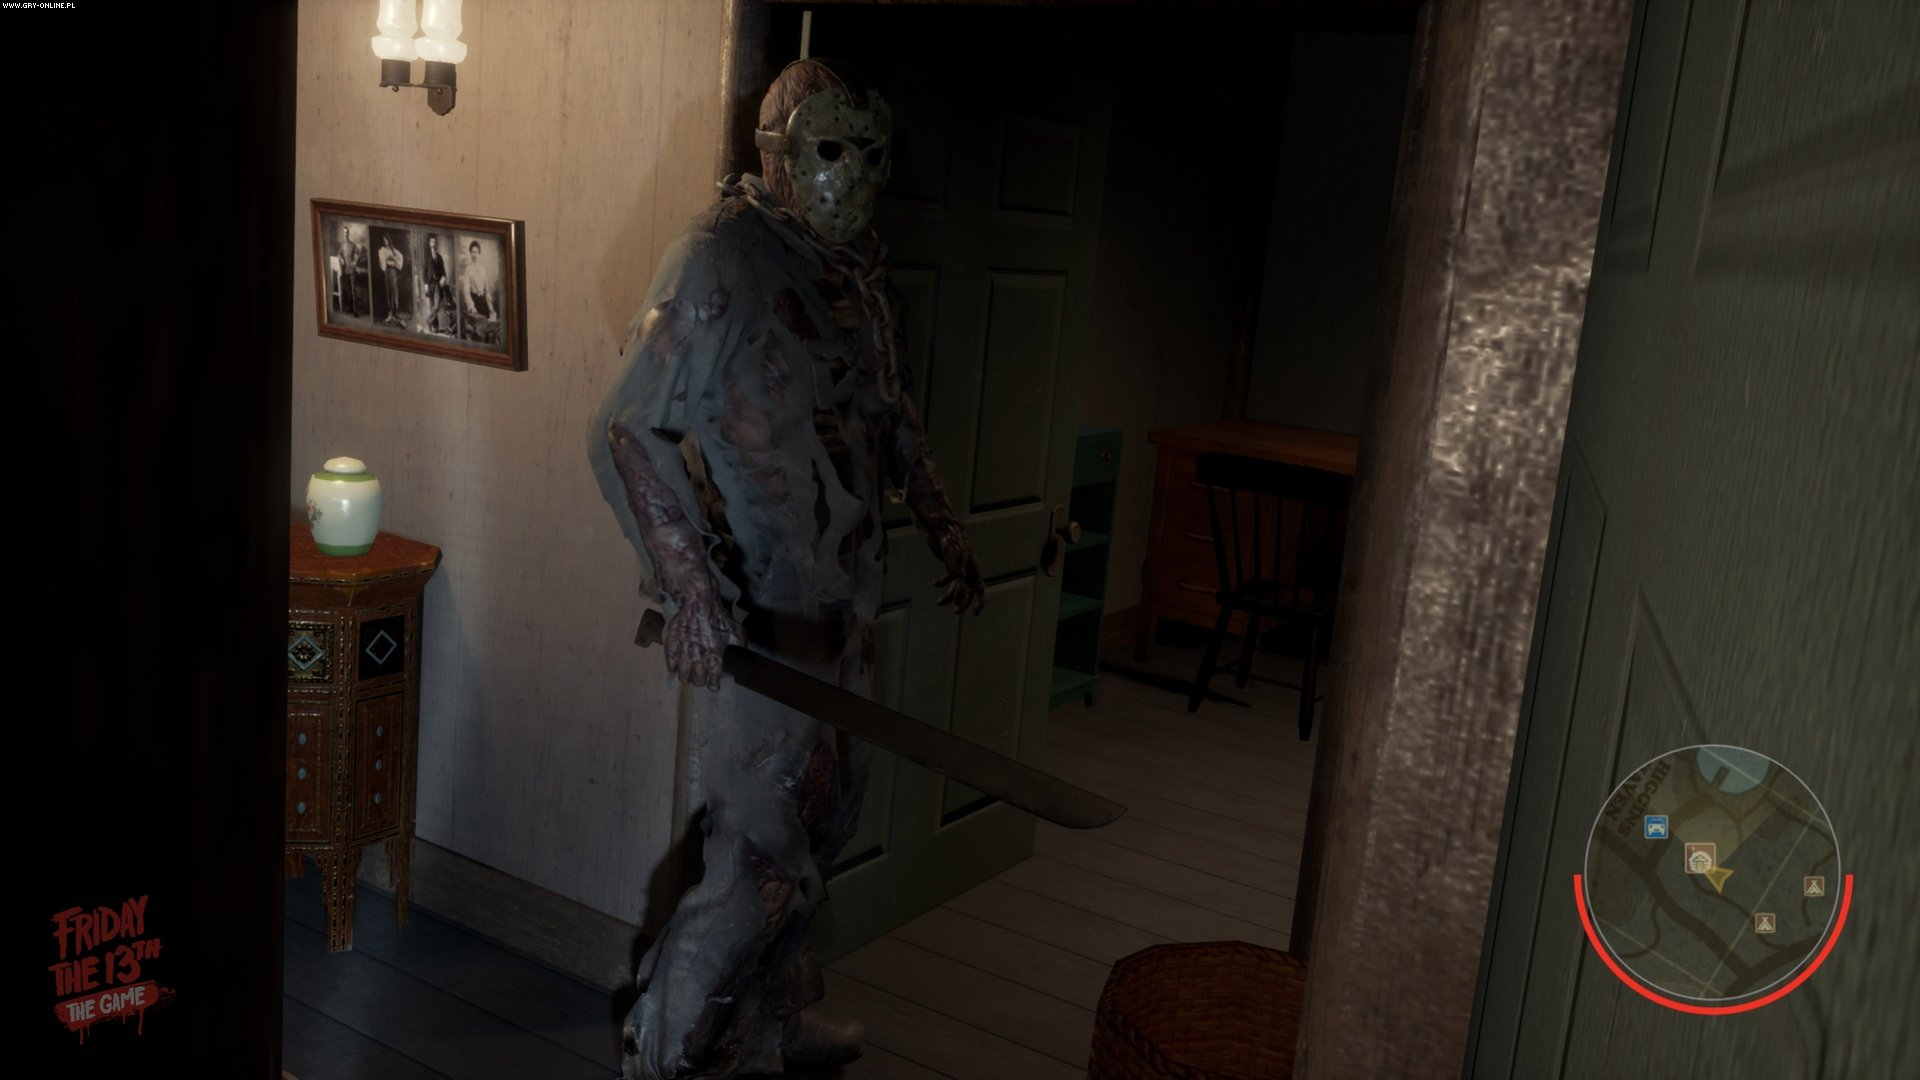 Friday the 13th: The Game PC, PS4, XONE Games Image 10/18, Illfonic Games, Gun Media